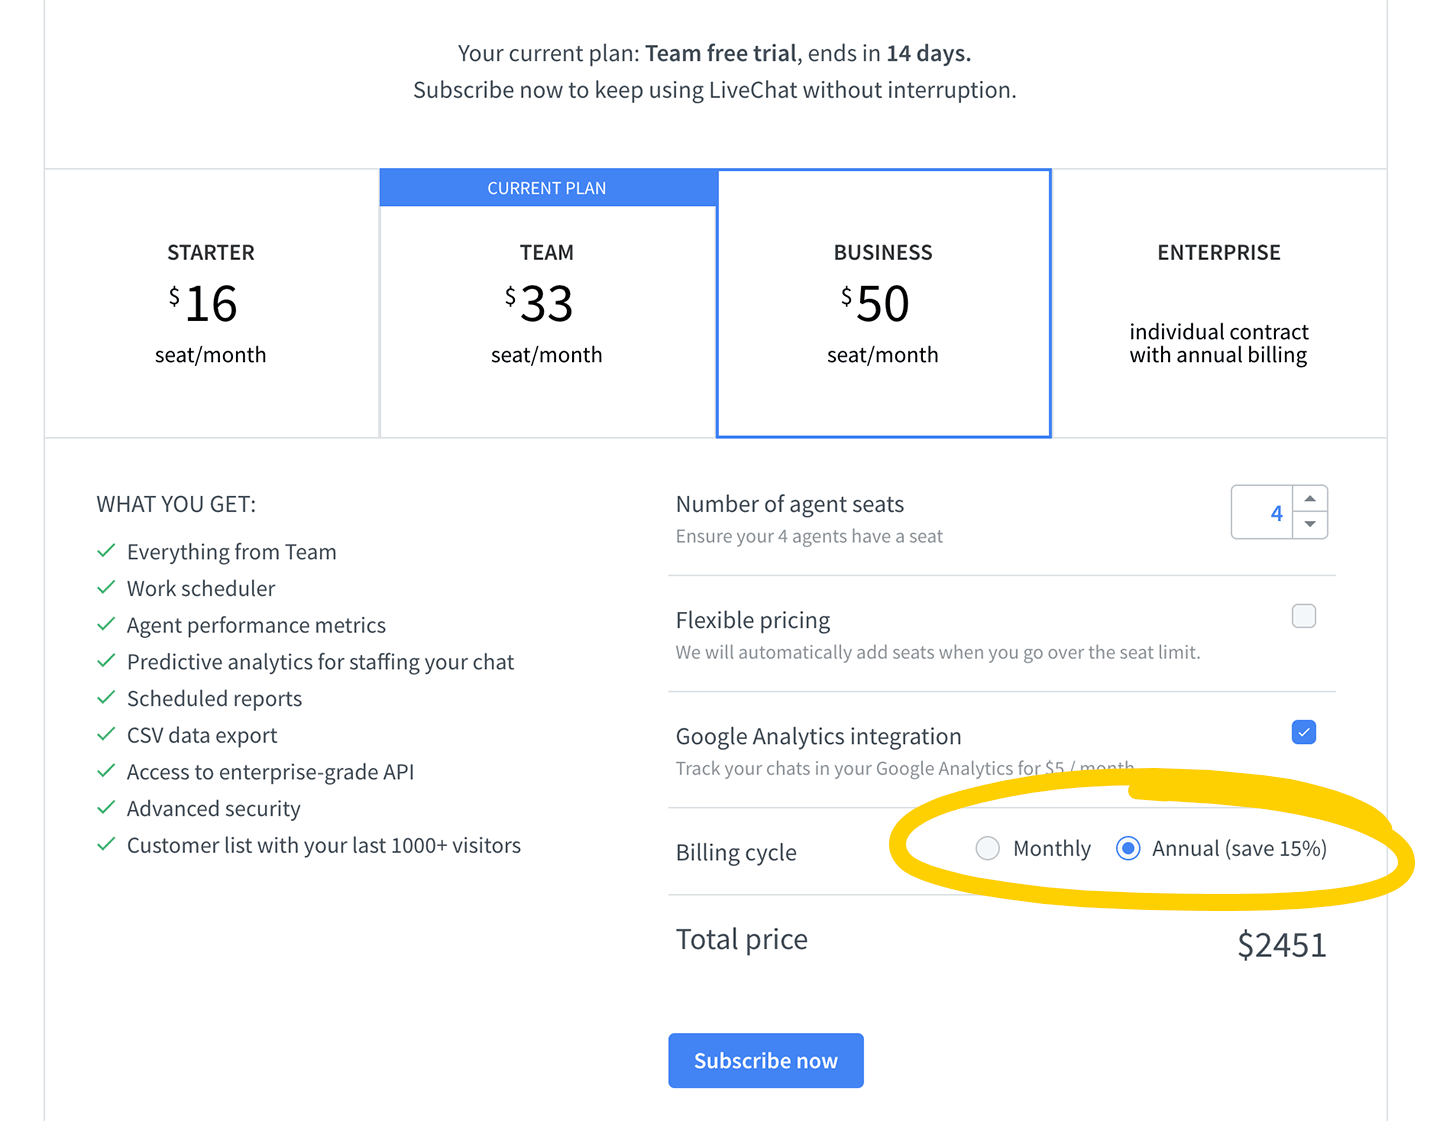 https://res.cloudinary.com/dn1j6dpd7/image/upload/v1572338375/help/Billing-cycle